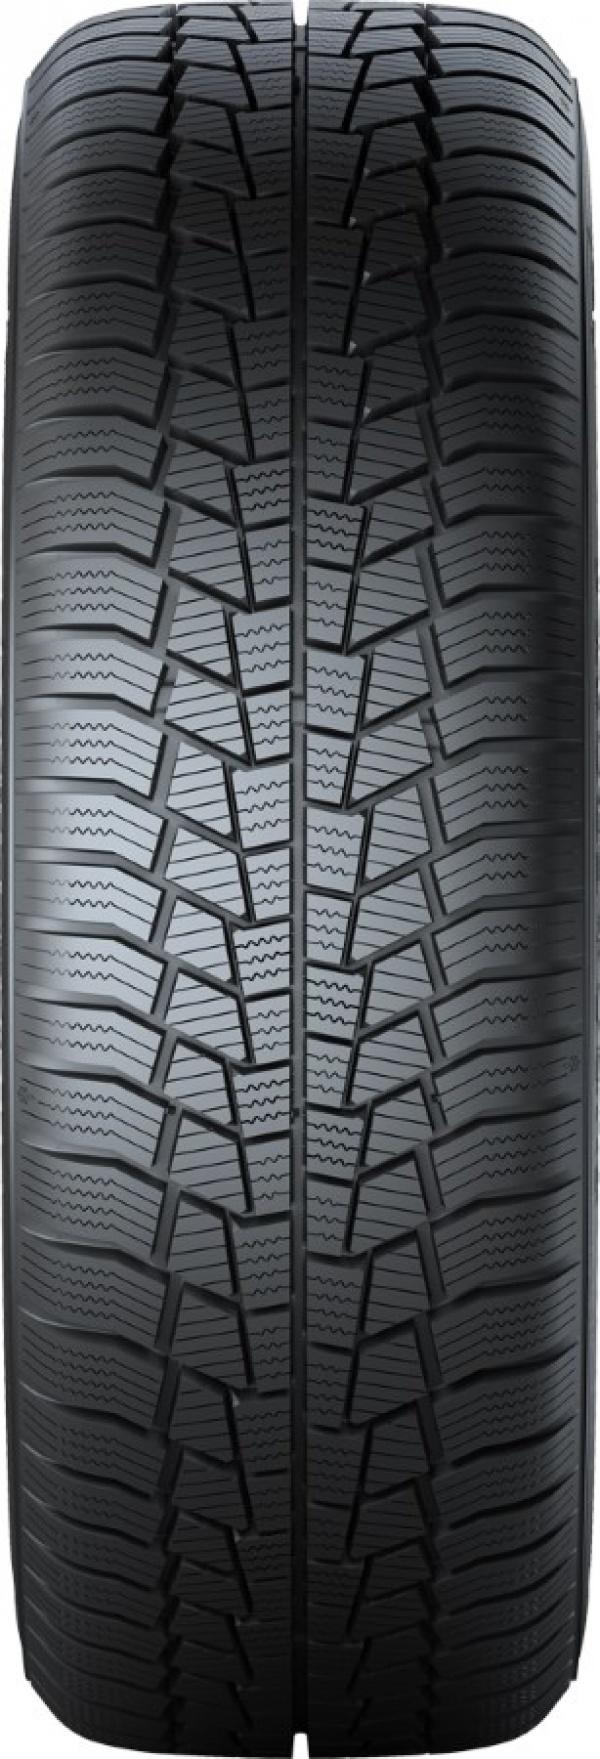 Gislaved Euro Frost 6 195/55 R16 91H  не шип